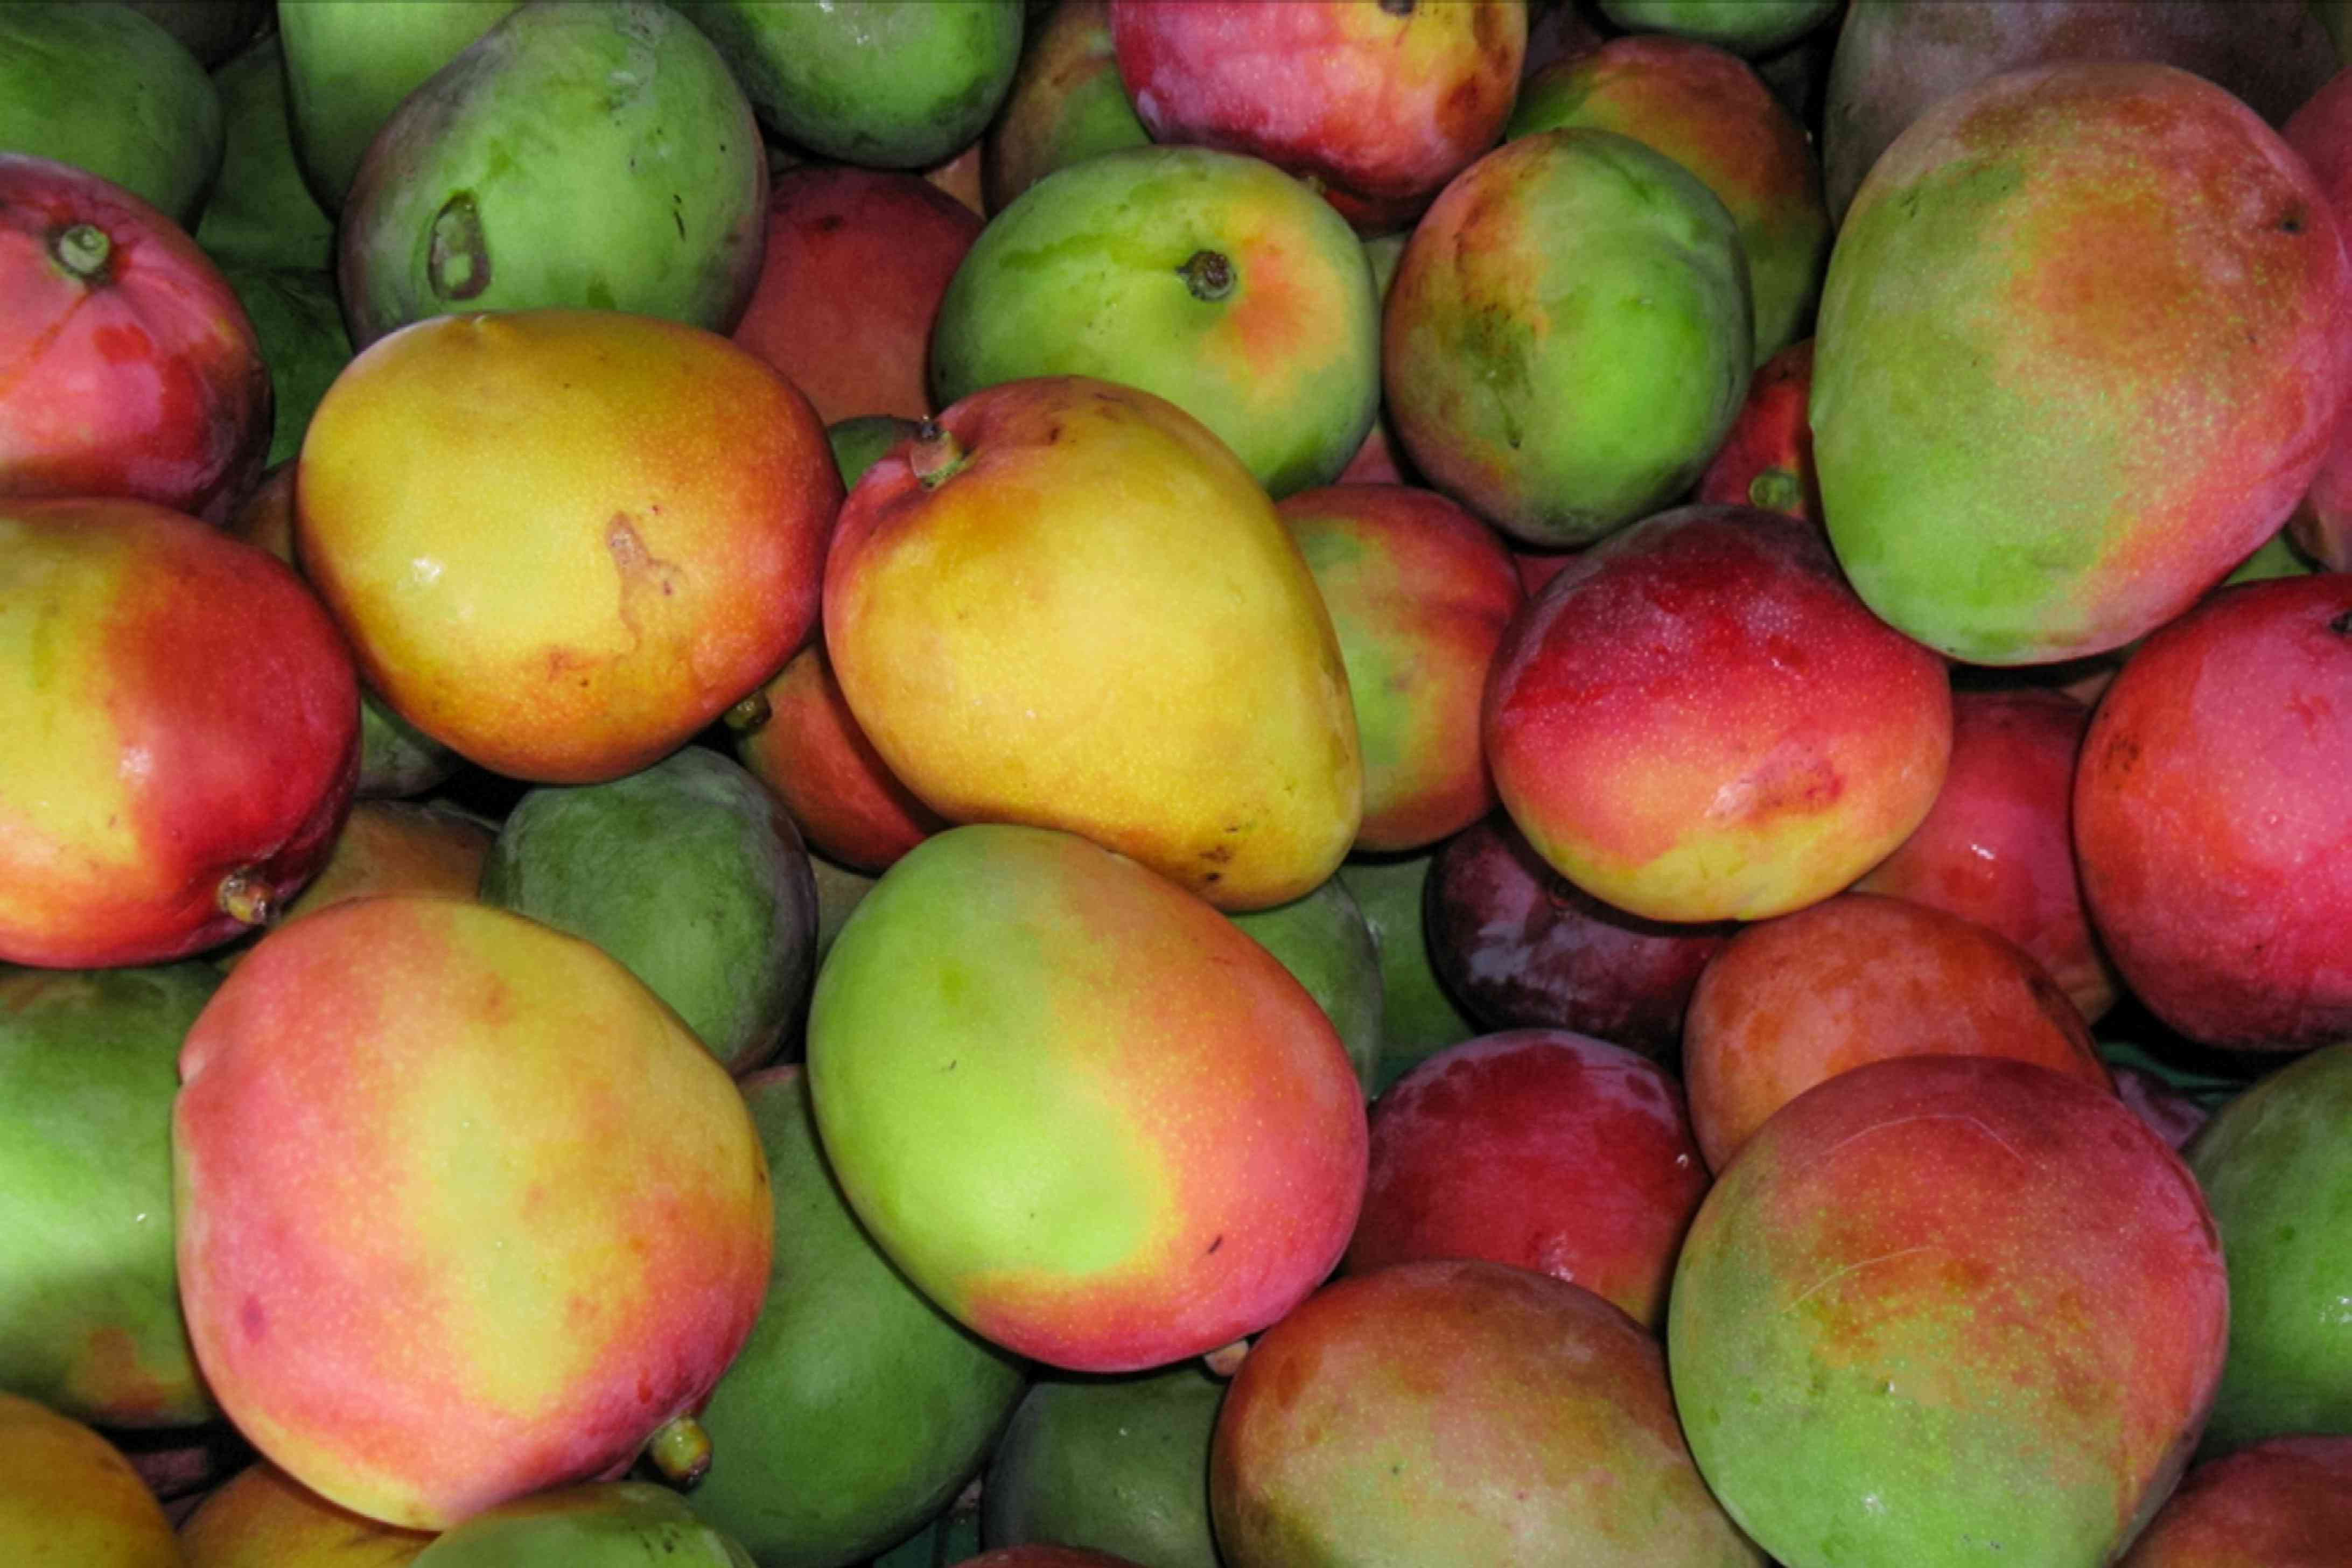 Red, yellow and red mangoes piled on each other